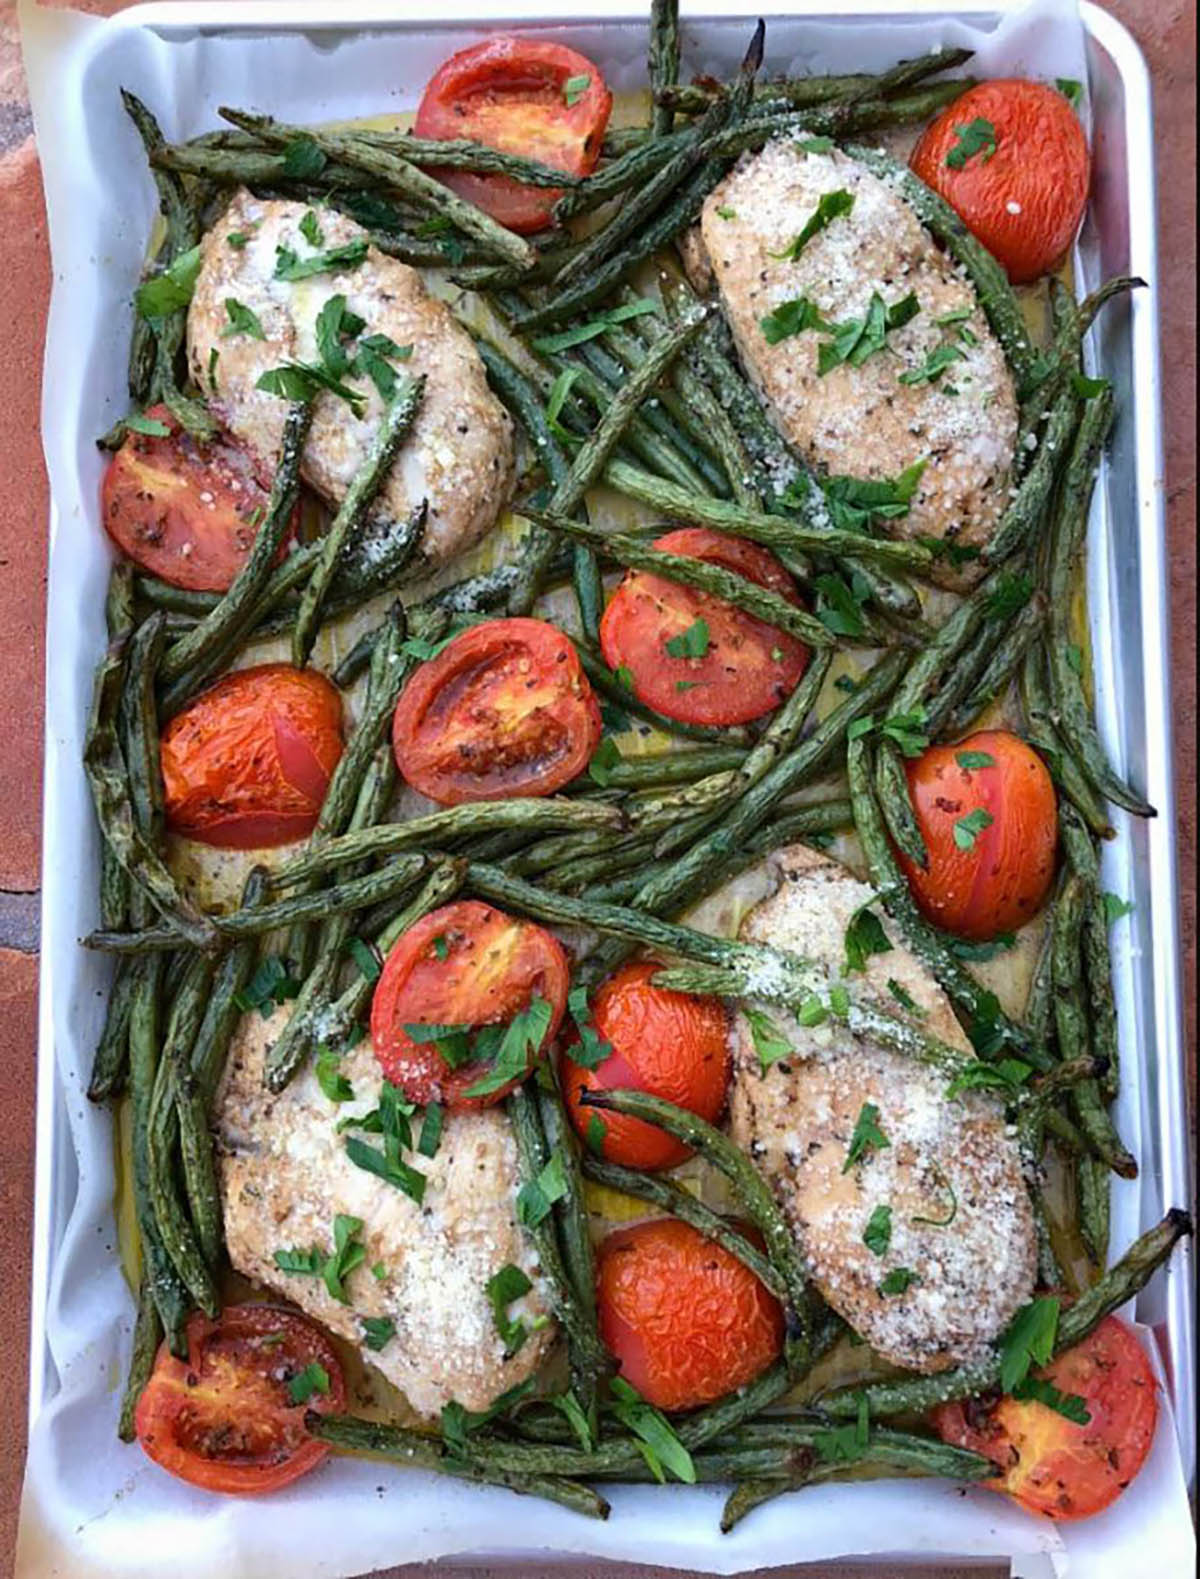 Tuscan Sheet Pan Dinner with tomatoes and beans